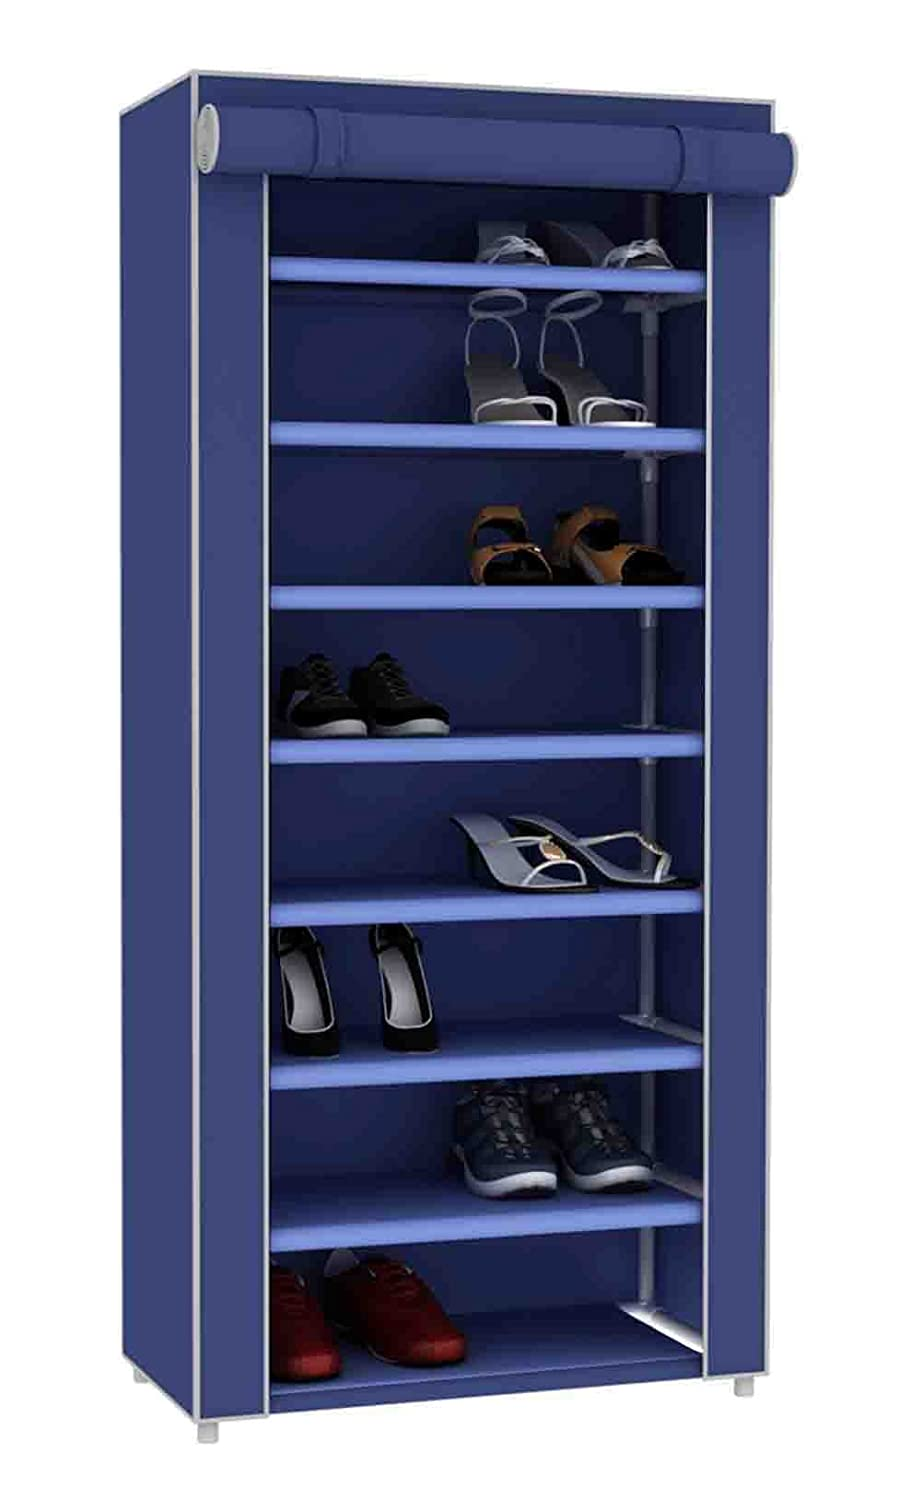 Sunbeam Multipurpose Portable Dust Free Wardrobe Storage Closet Rack for Shoes and Clothing 7 Tier/Fits 24 Pairs of Shoes Heavy Duty Non Woven Material Gray with Roll Down Cover (Navy)